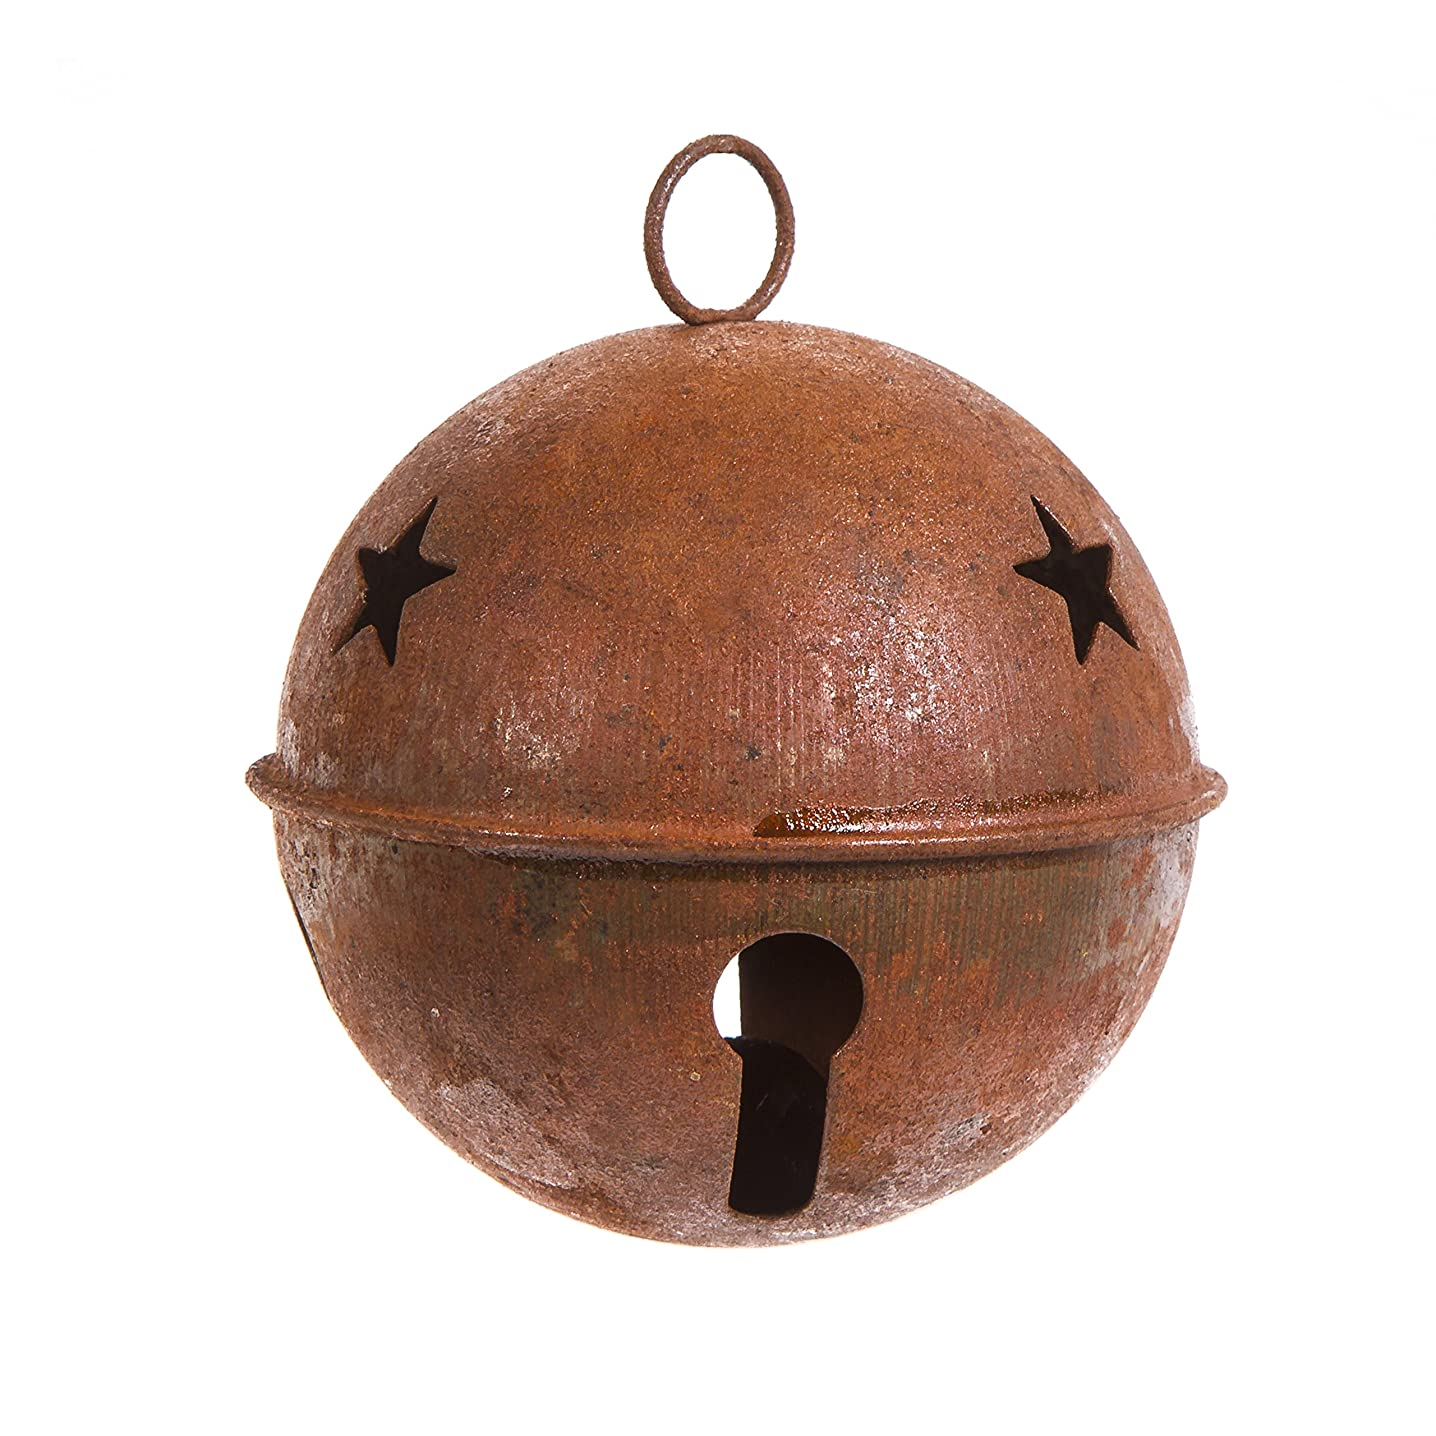 Darice Large Rusted Vintage Bell - 3.15